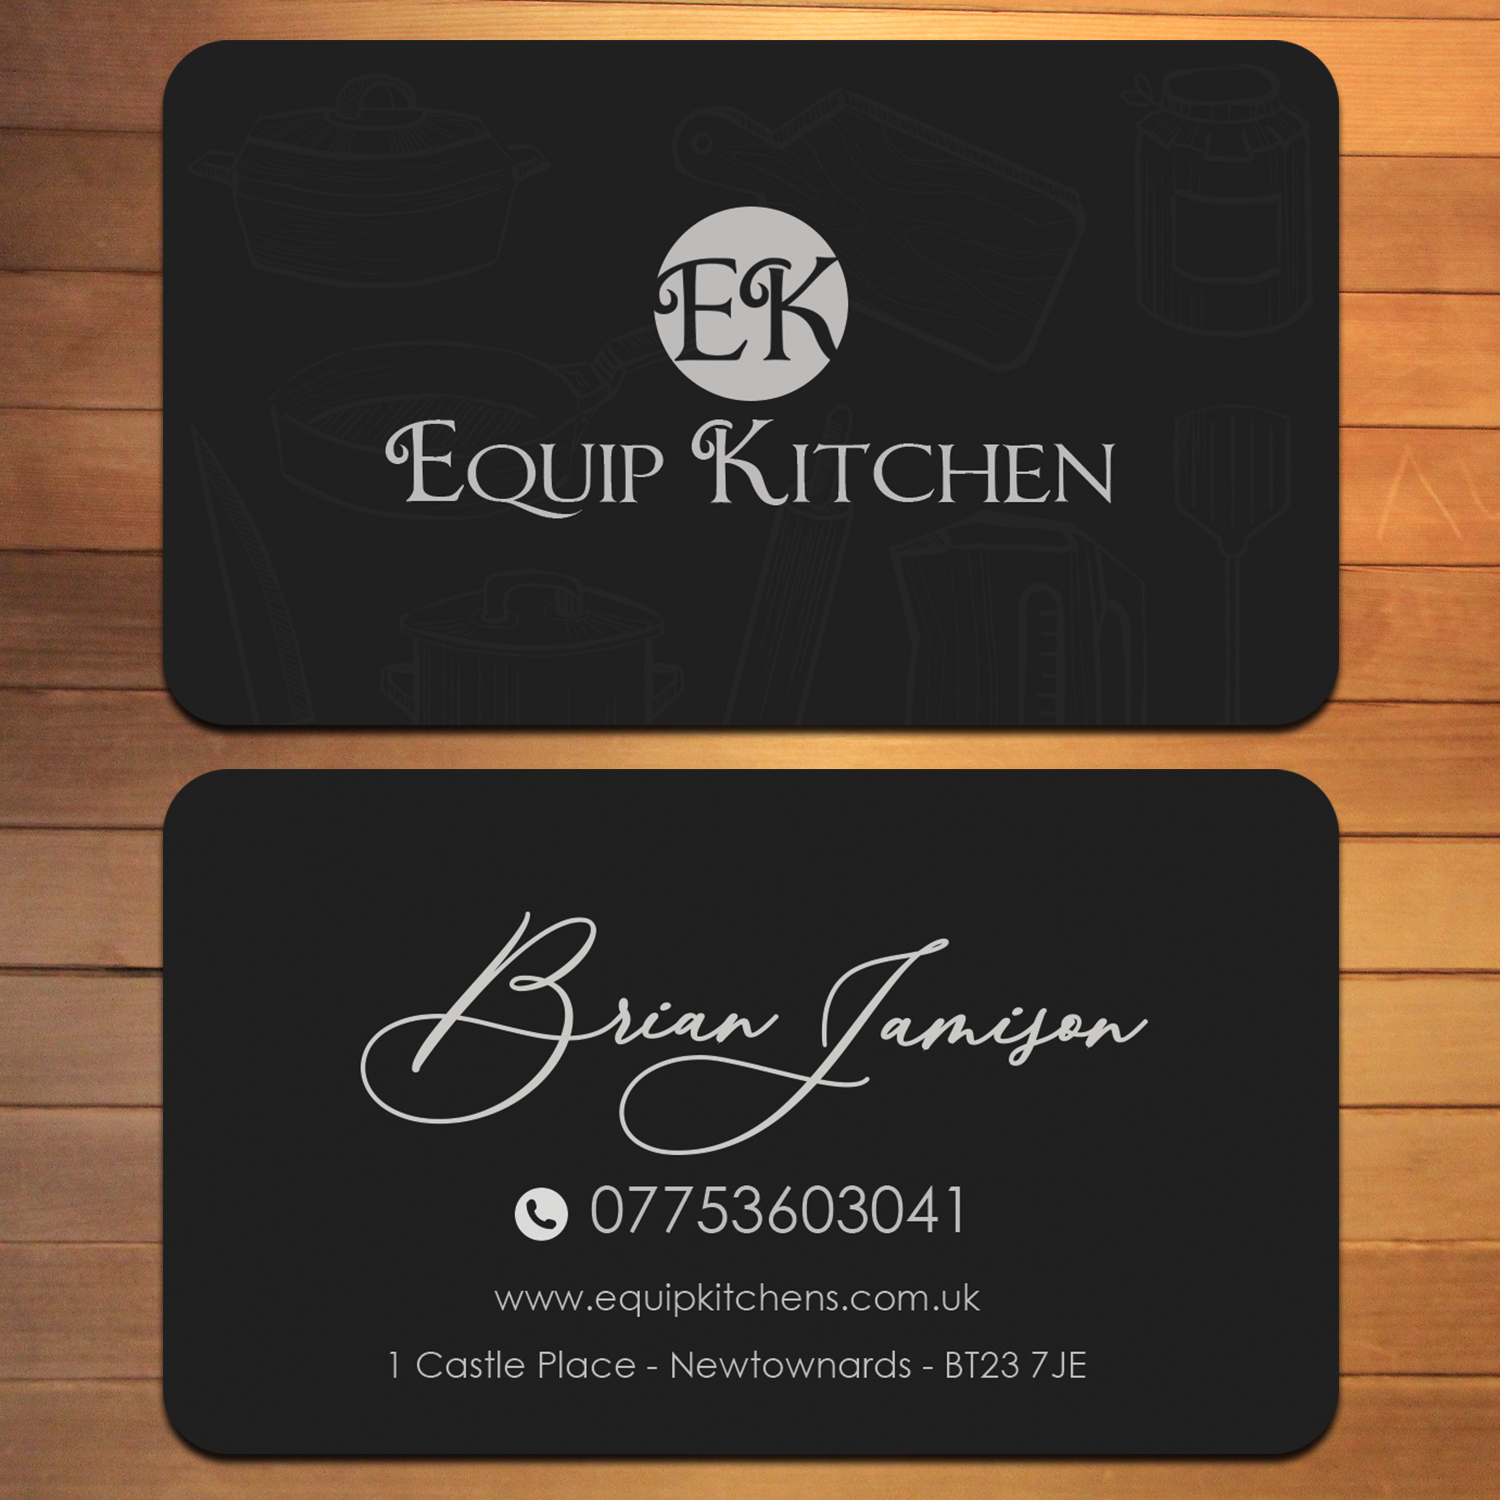 Professional Upmarket Interior Design Business Card Design For